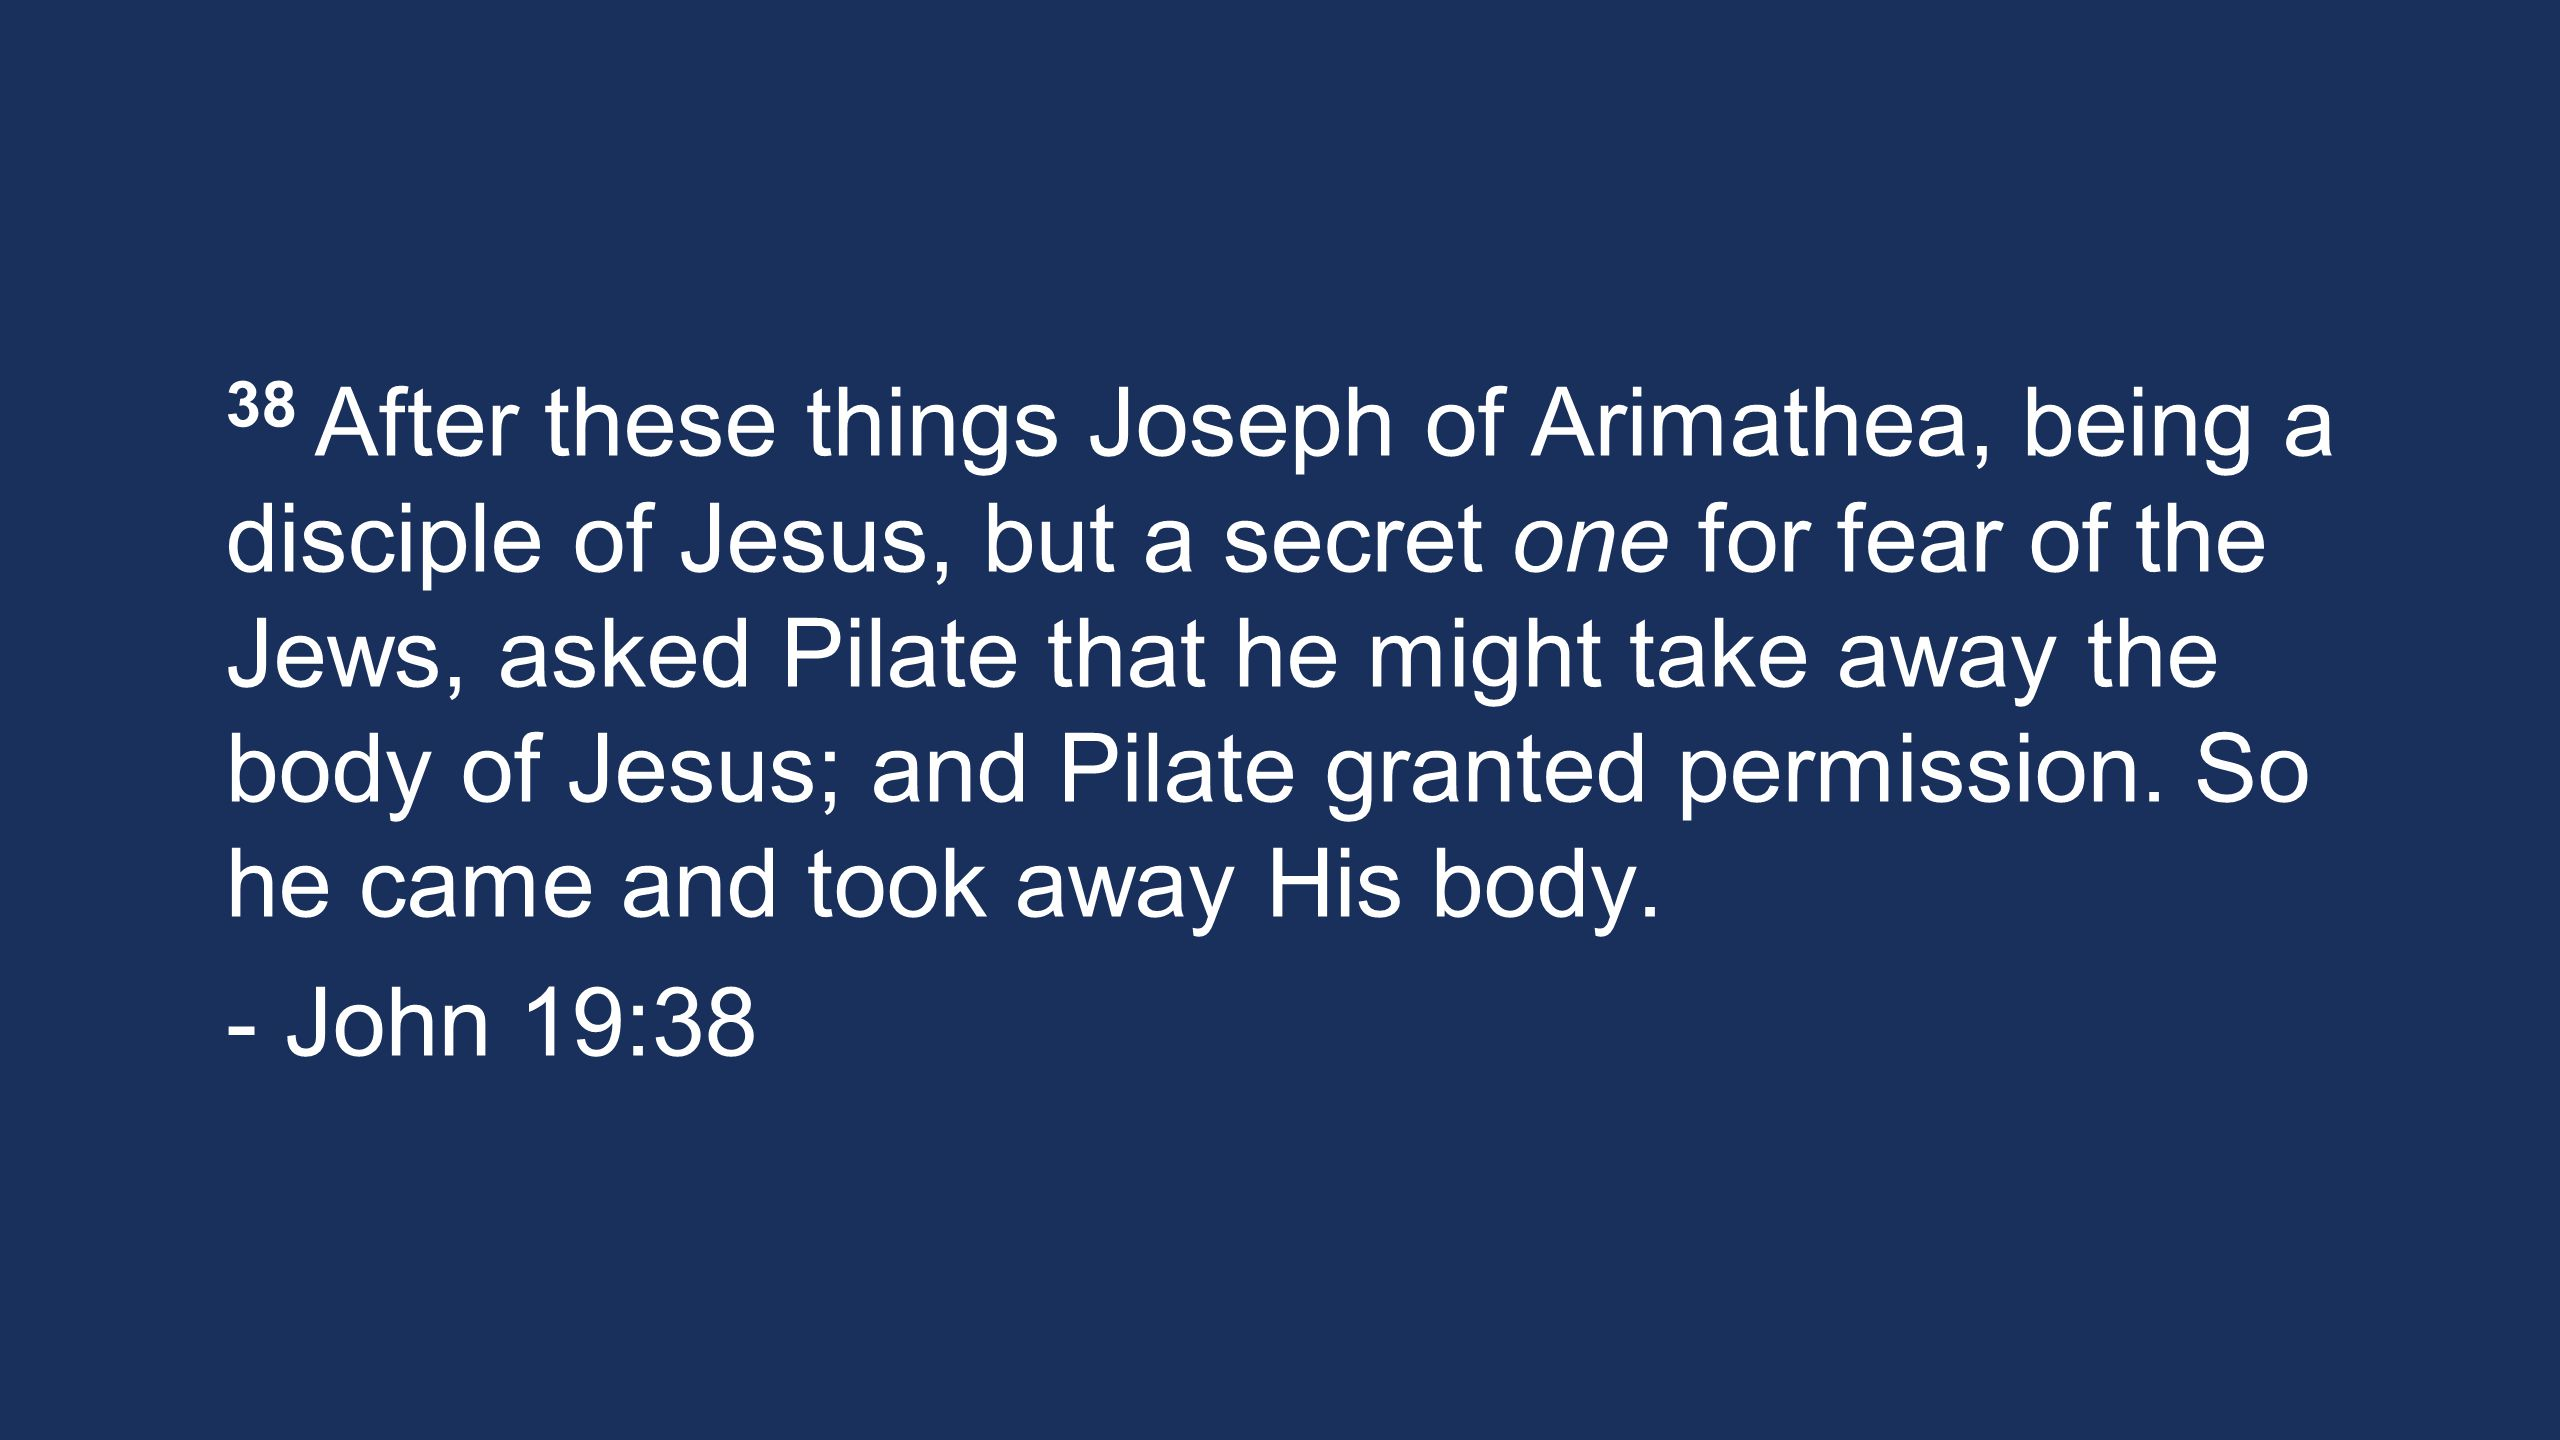 38 After these things Joseph of Arimathea, being a disciple of Jesus, but a secret one for fear of the Jews, asked Pilate that he might take away the